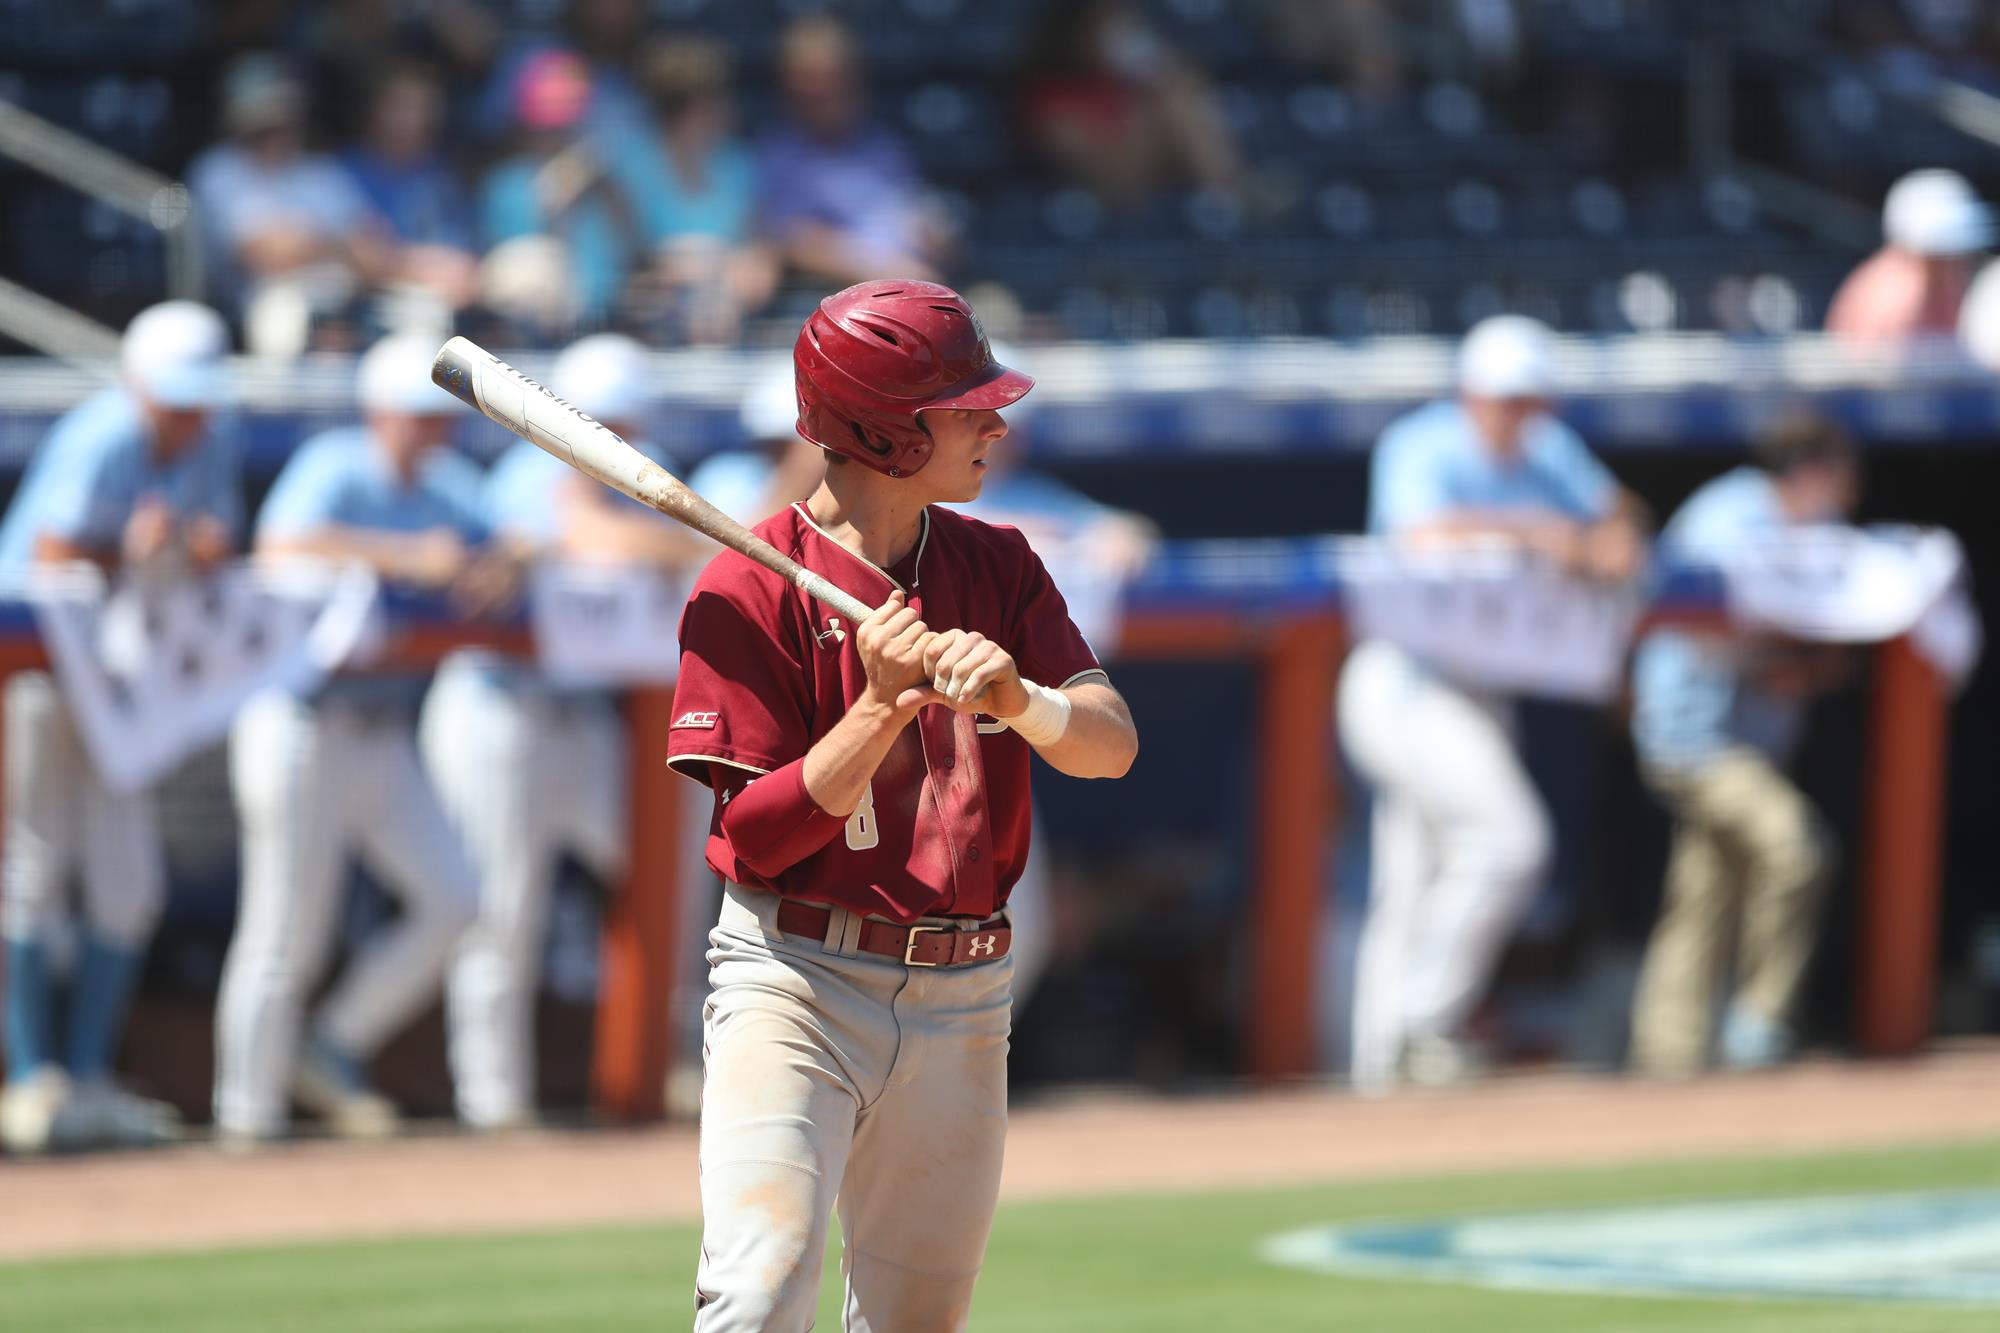 White Sox Select BC's Metzdorf in Fifth Round - Boston